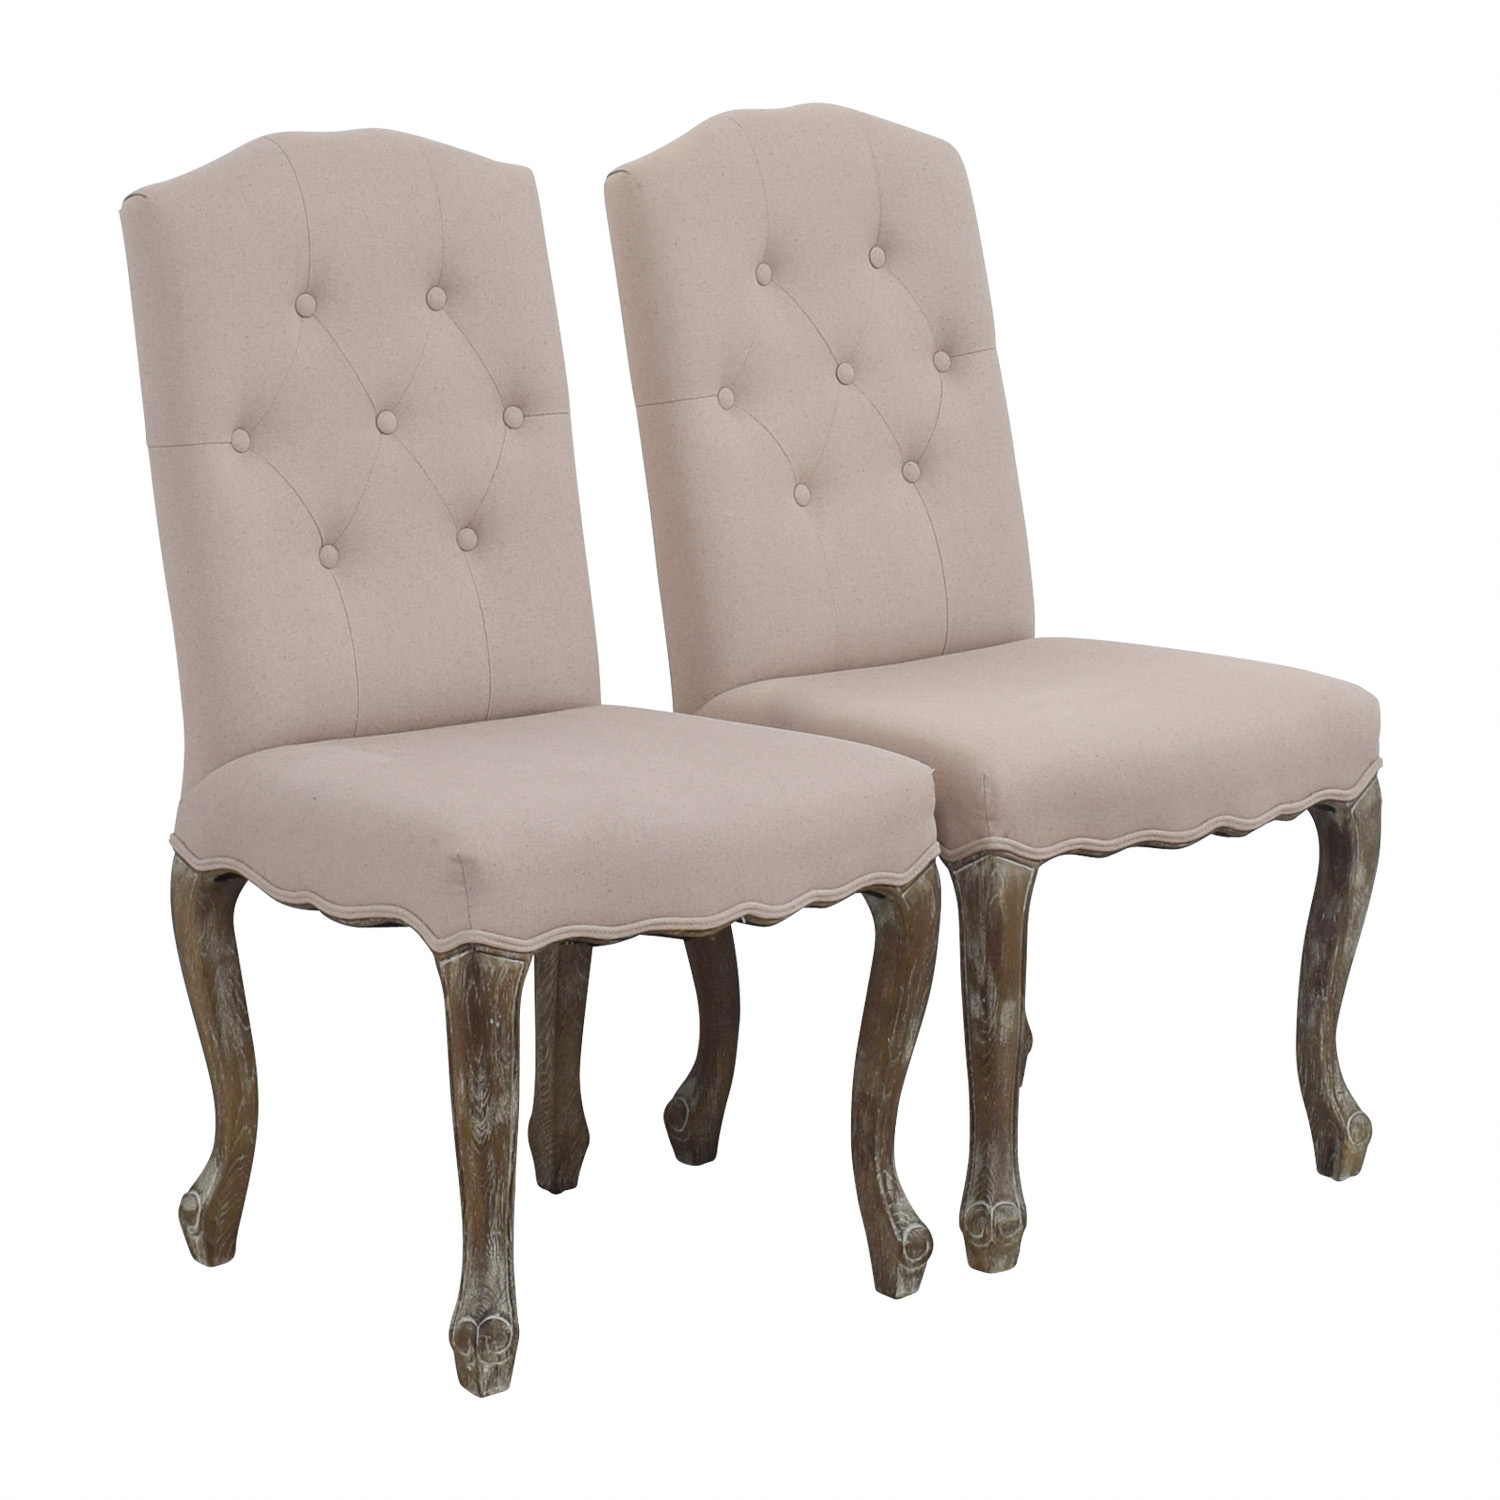 Safavieh Safavieh Tufted Beige Side Chairs PAIGE